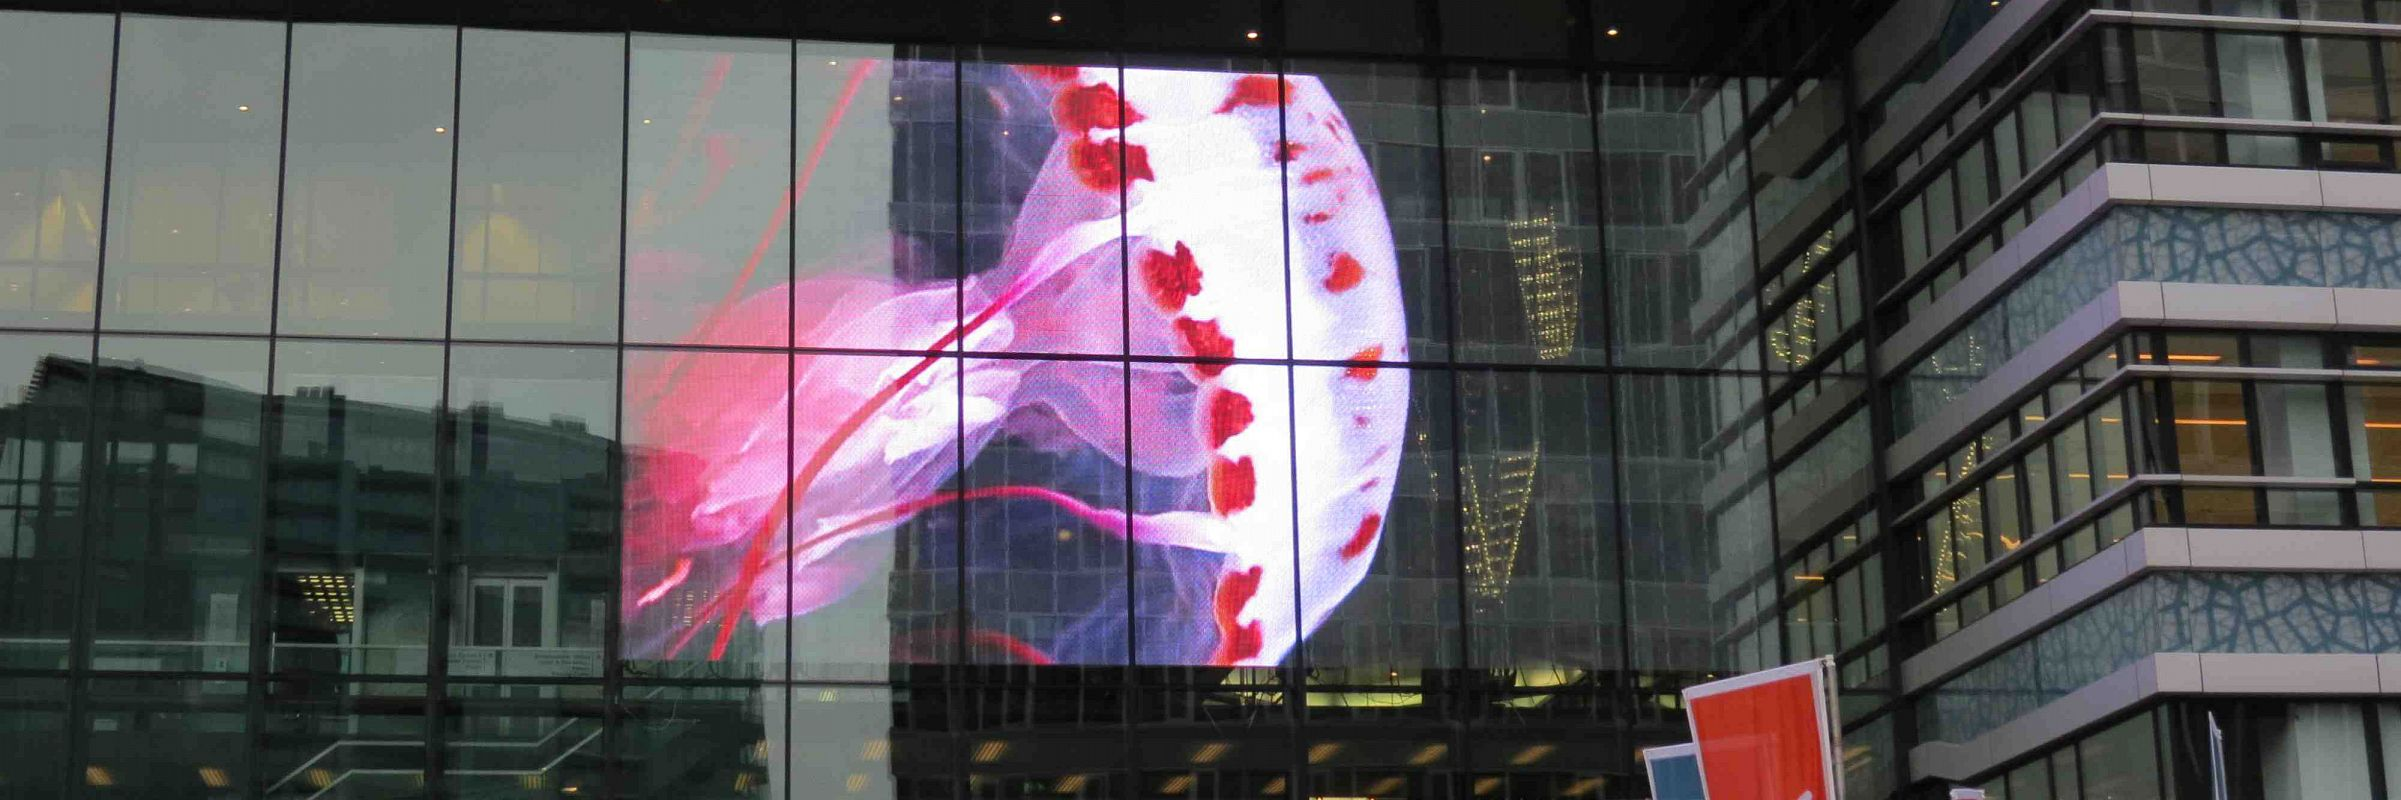 transparent led screens clearled